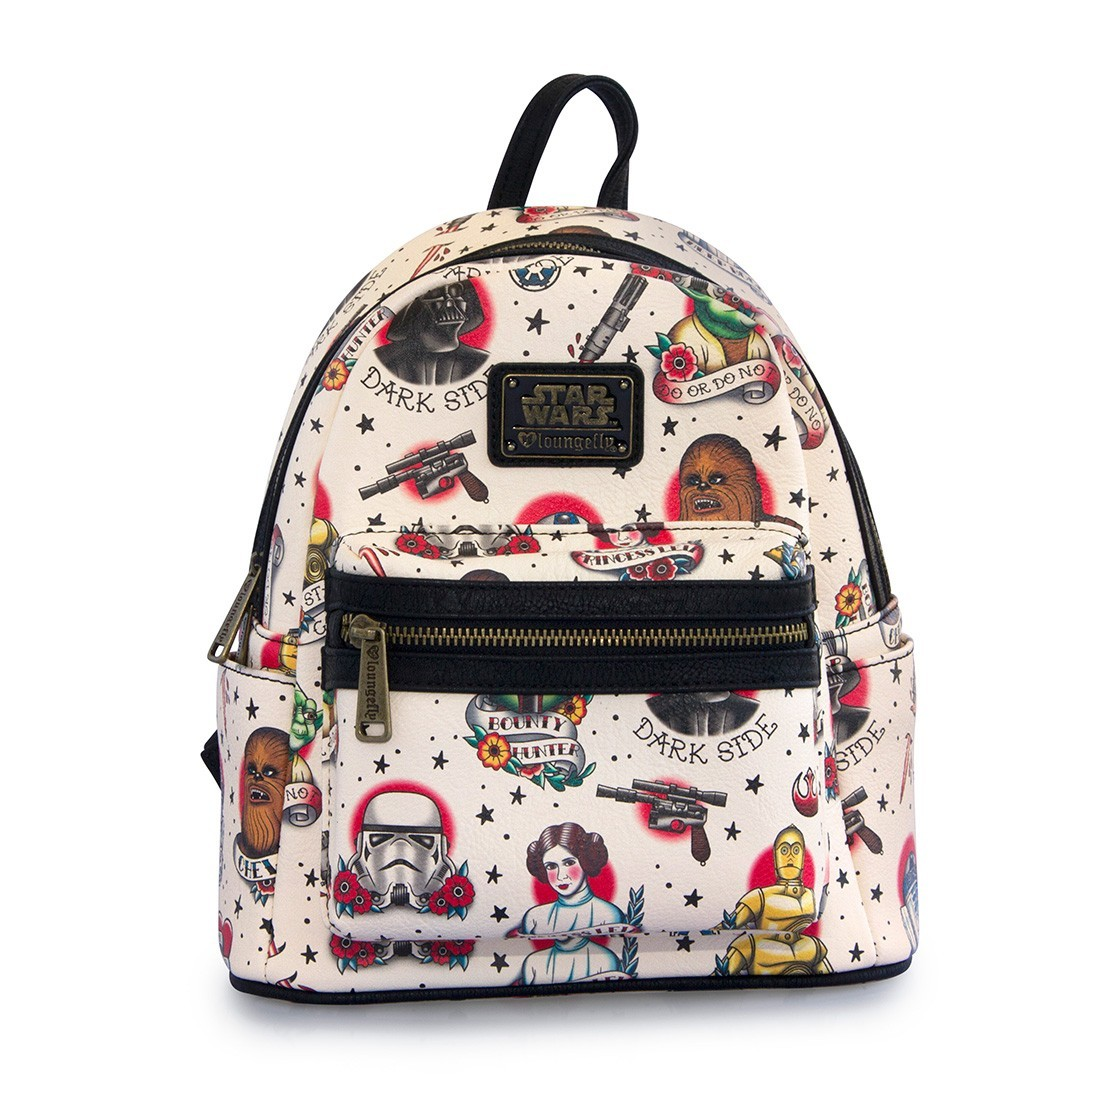 Loungefly - Star Wars  baby character  mini backpack Loungefly - Star Wars   tattoo flash  mini backpack 442ee58e5e2a9